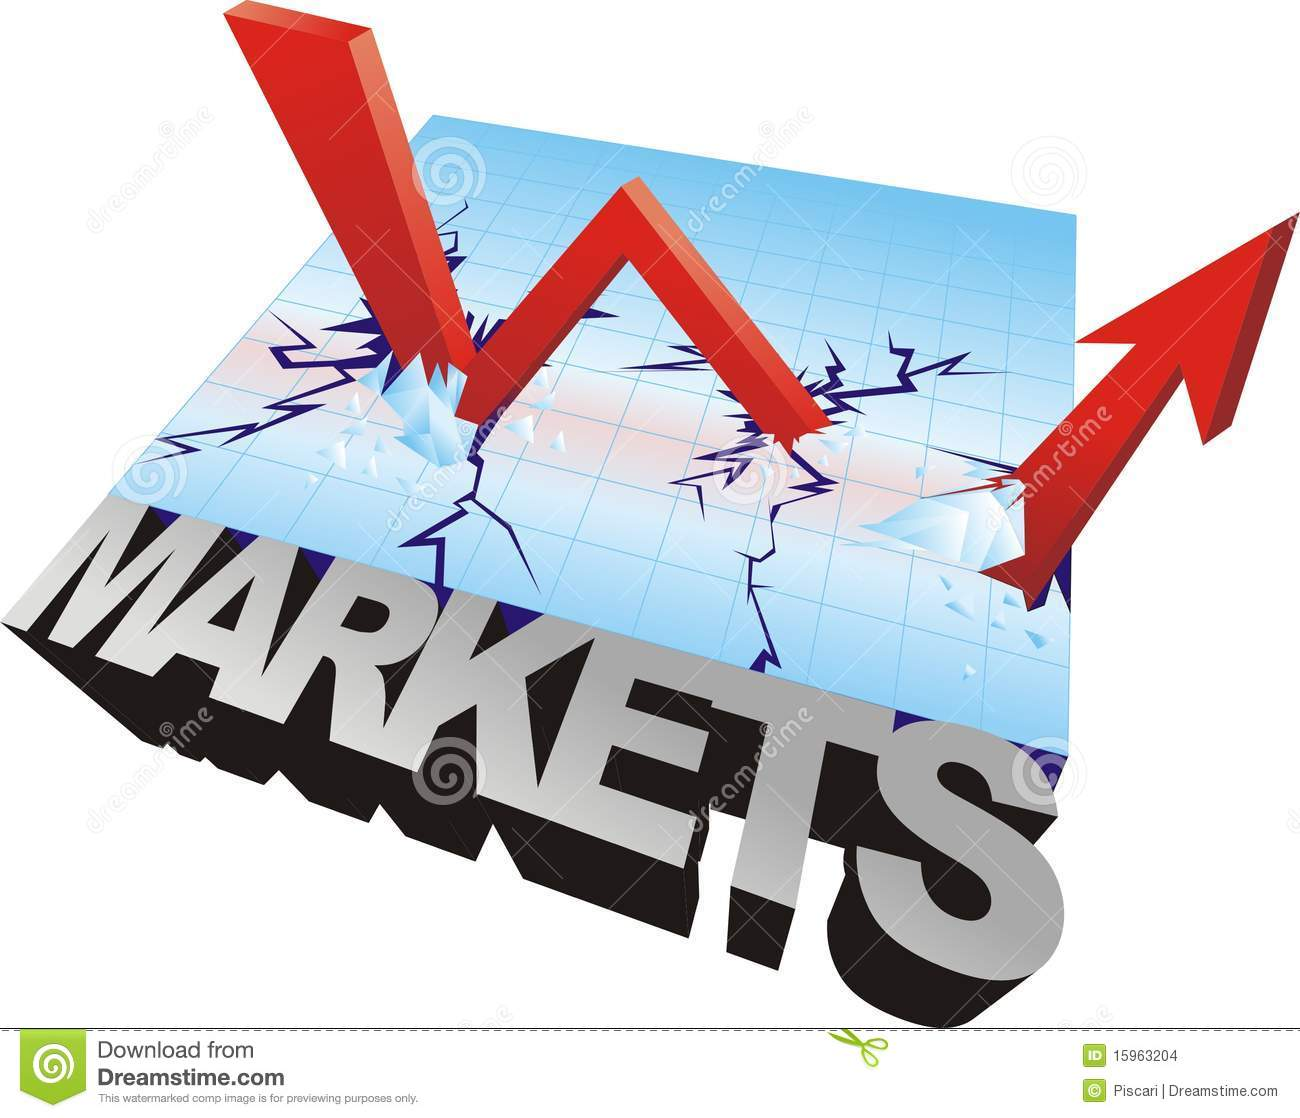 Clipart stock market graph banner freeuse library Stock Market Graph Stock Images - Image: 15963204 banner freeuse library